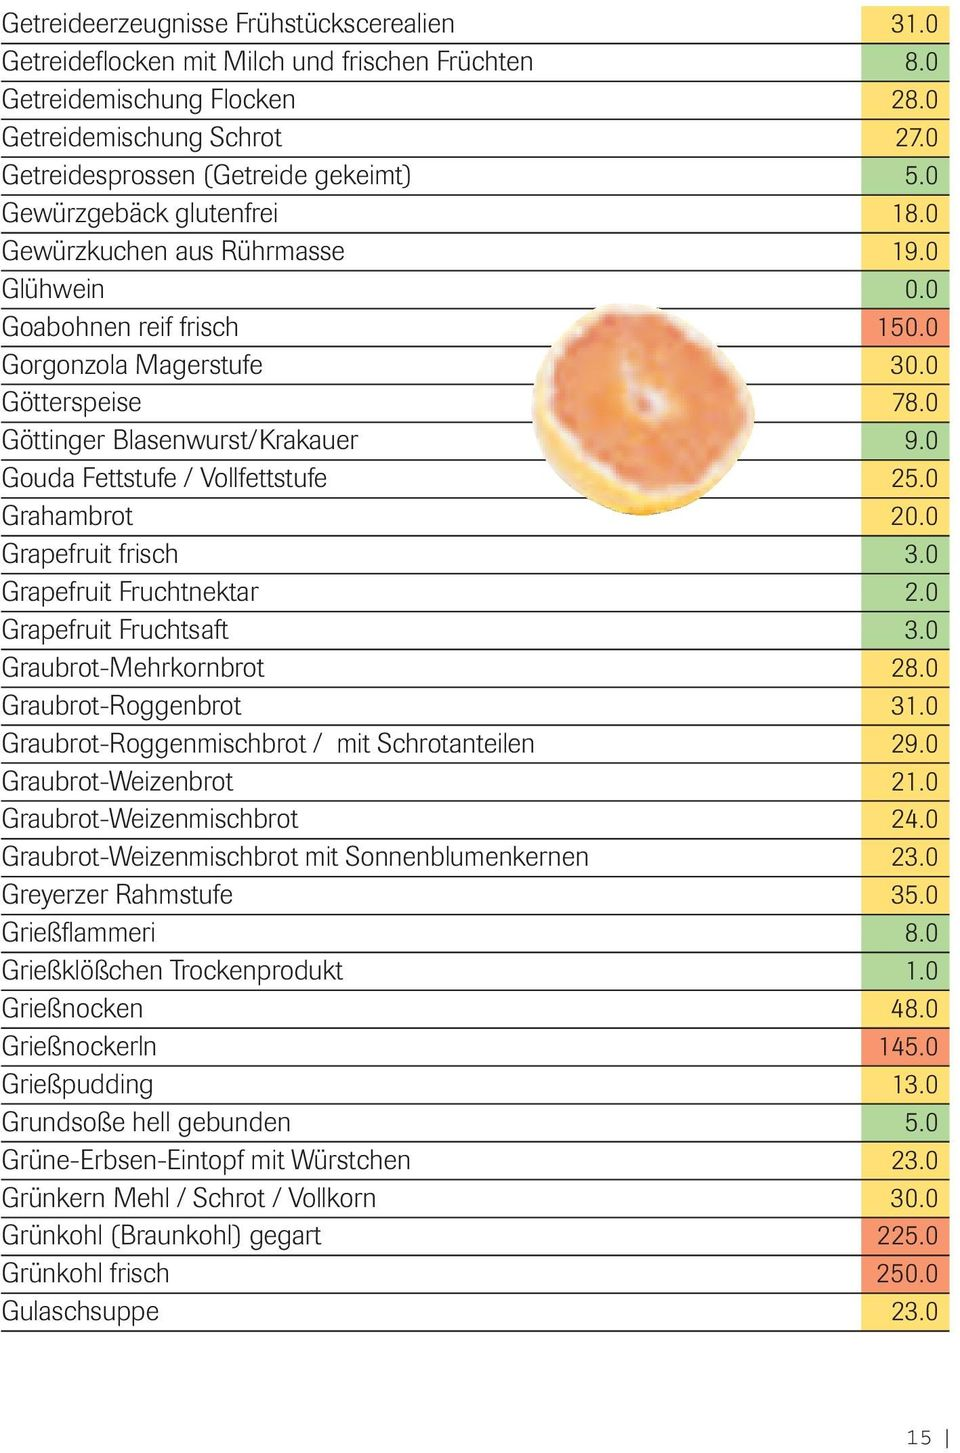 0 Gouda Fettstufe / Vollfettstufe 25.0 Grahambrot 20.0 Grapefruit frisch 3.0 Grapefruit Fruchtnektar 2.0 Grapefruit Fruchtsaft 3.0 Graubrot-Mehrkornbrot 28.0 Graubrot-Roggenbrot 31.